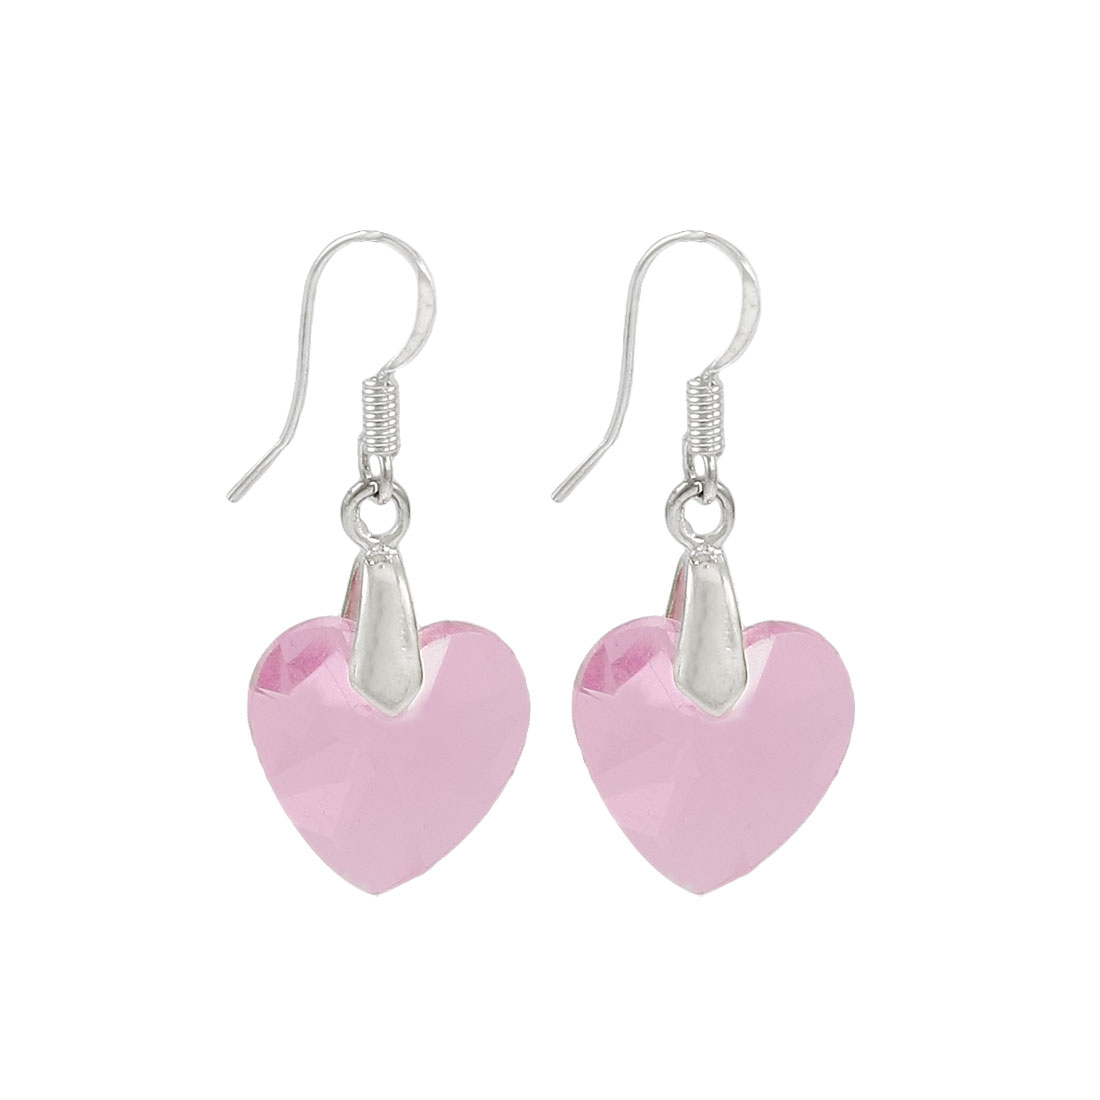 Plastic Crystal Heart Shape Pendant Dangling Earring Clear Pink Pair